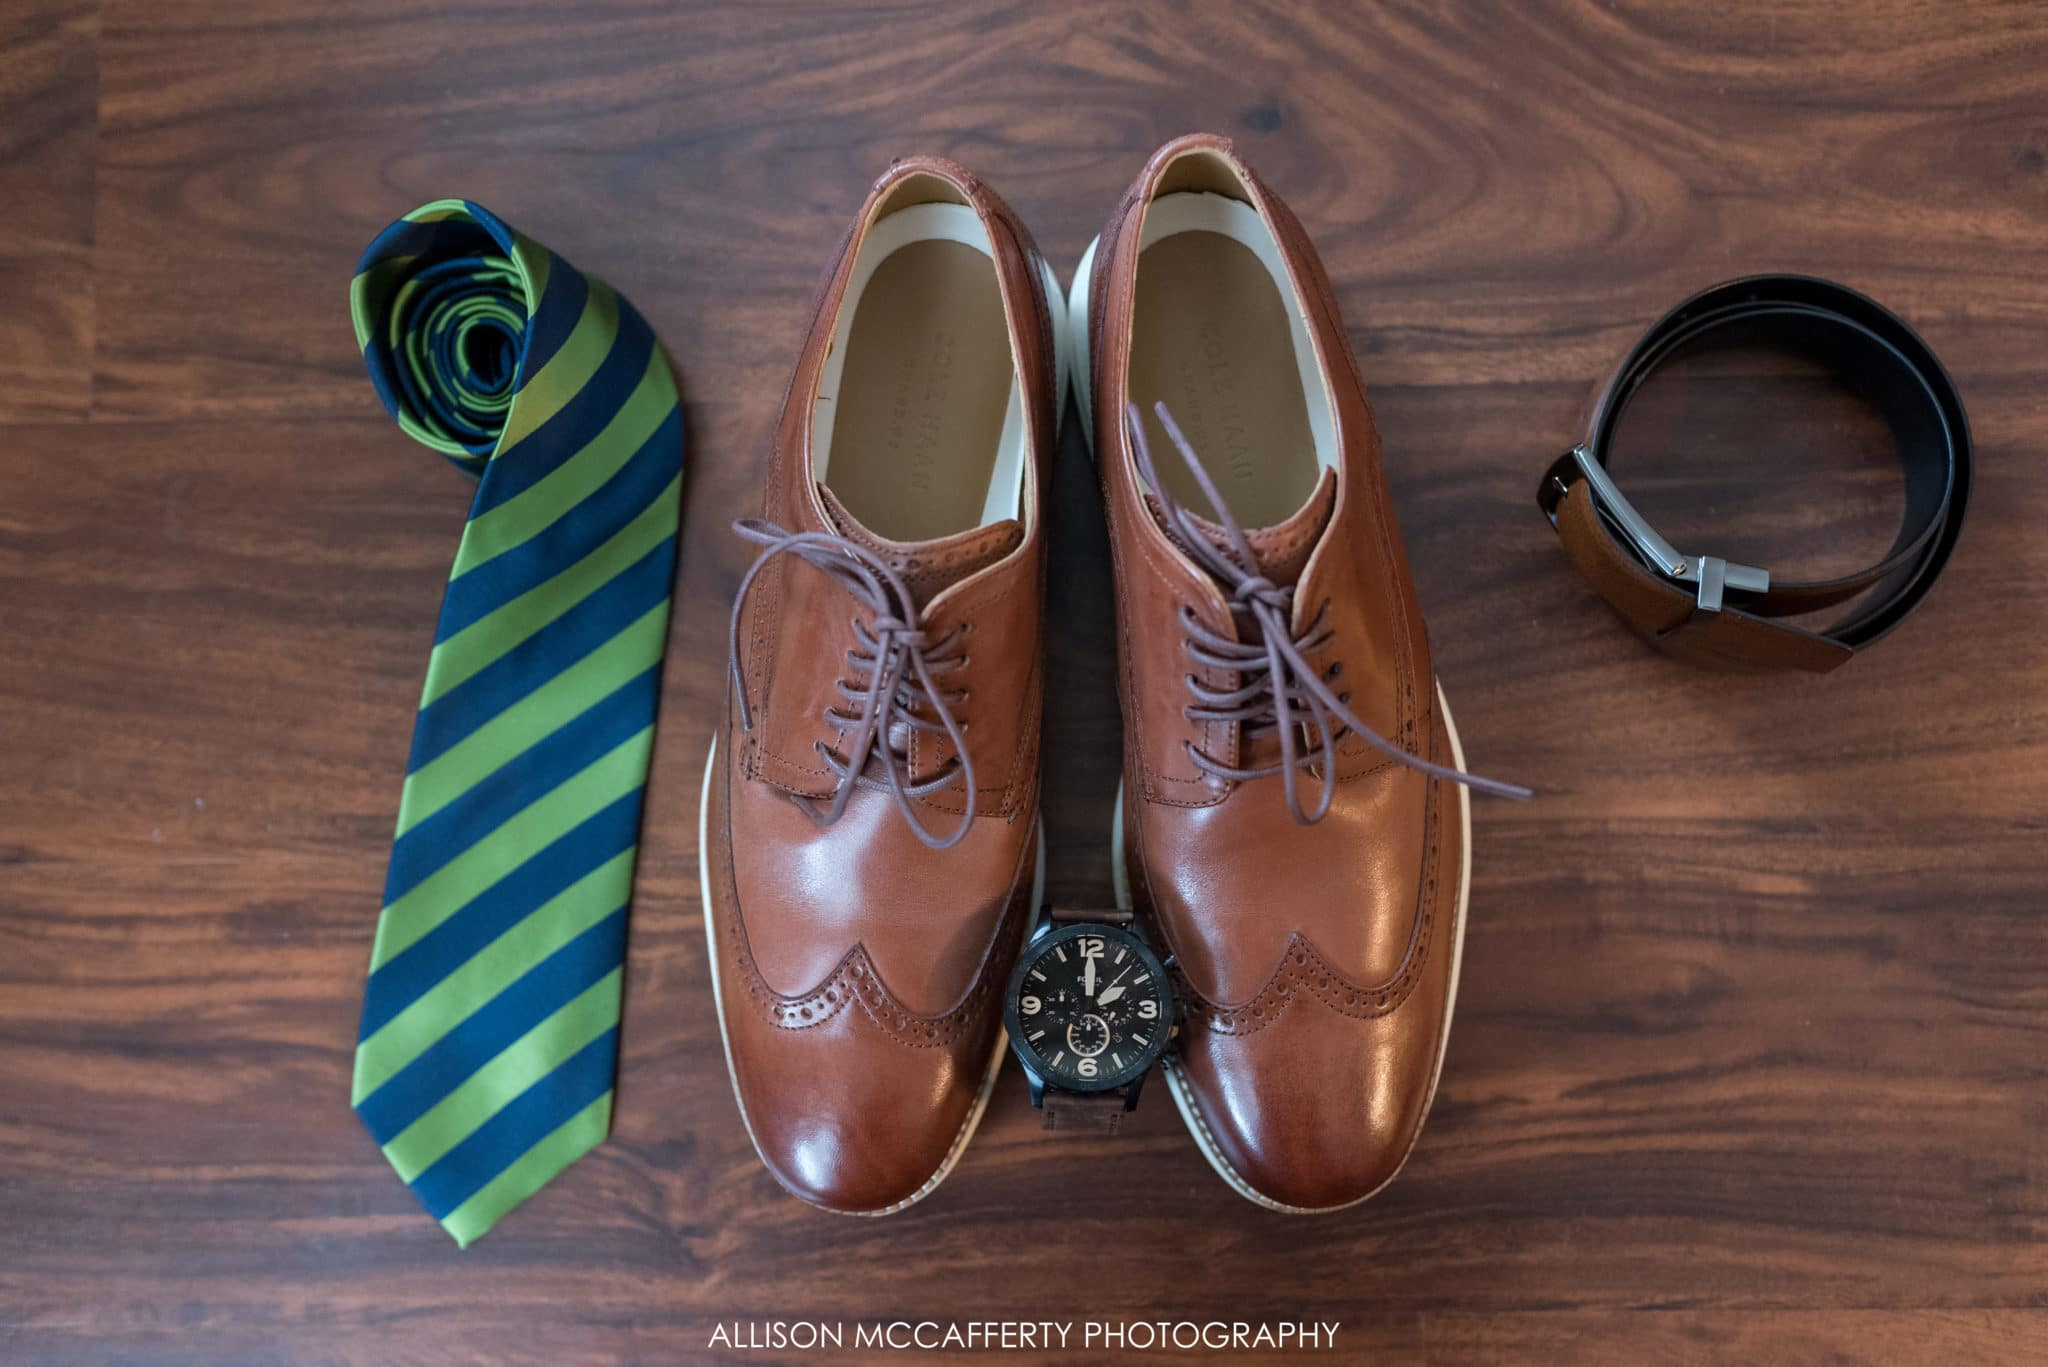 Groom prep photo of shoes and tie